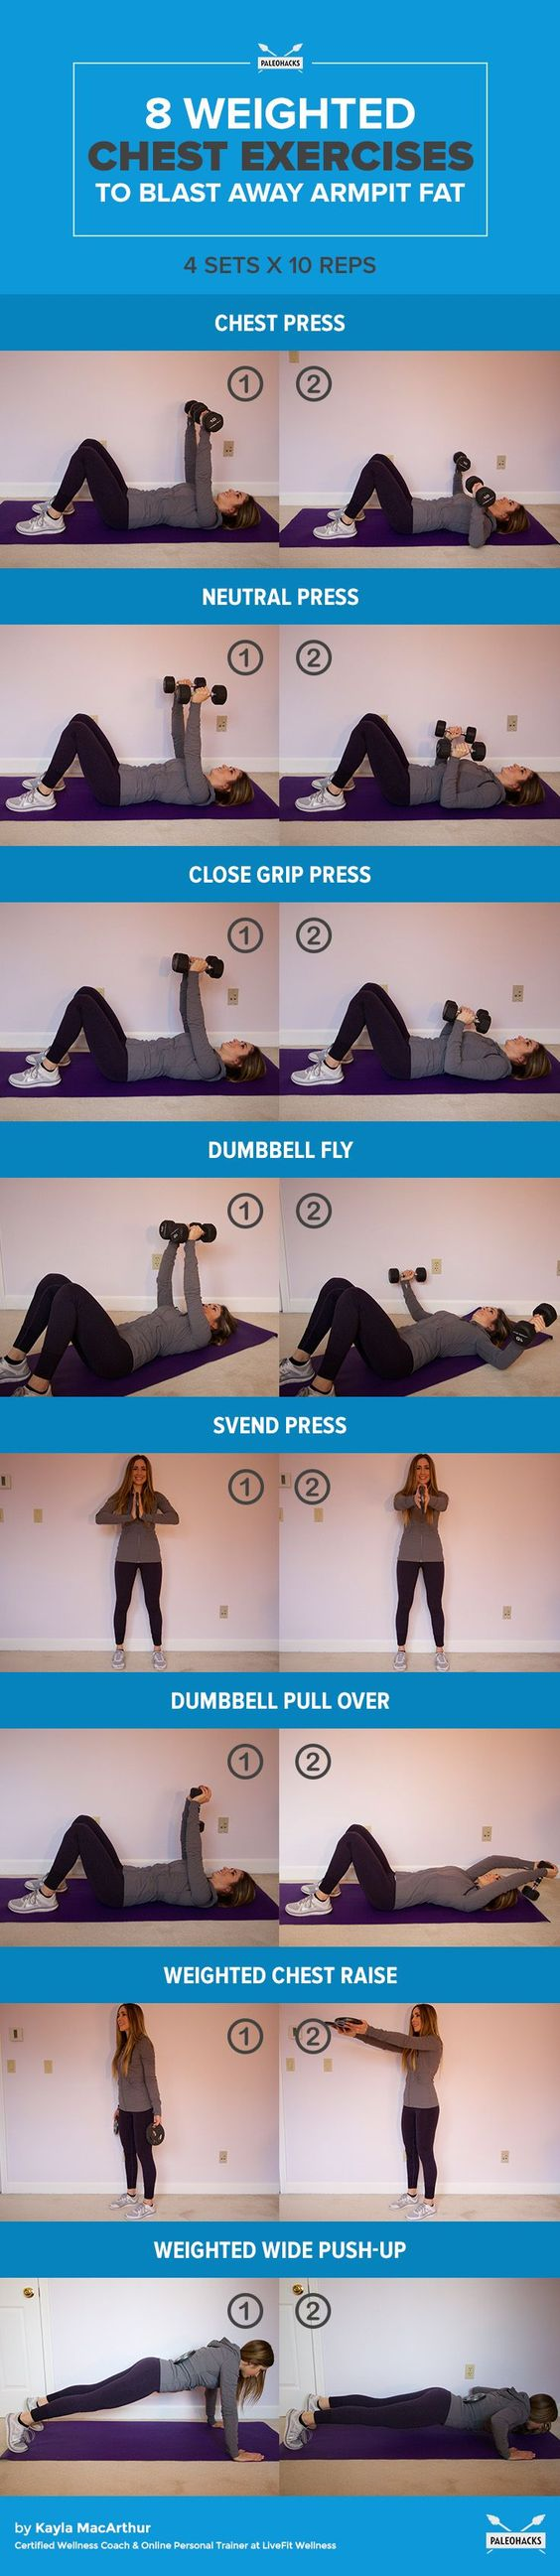 Blast away pesky armpit fat with these killer chest exercises you can do at home!